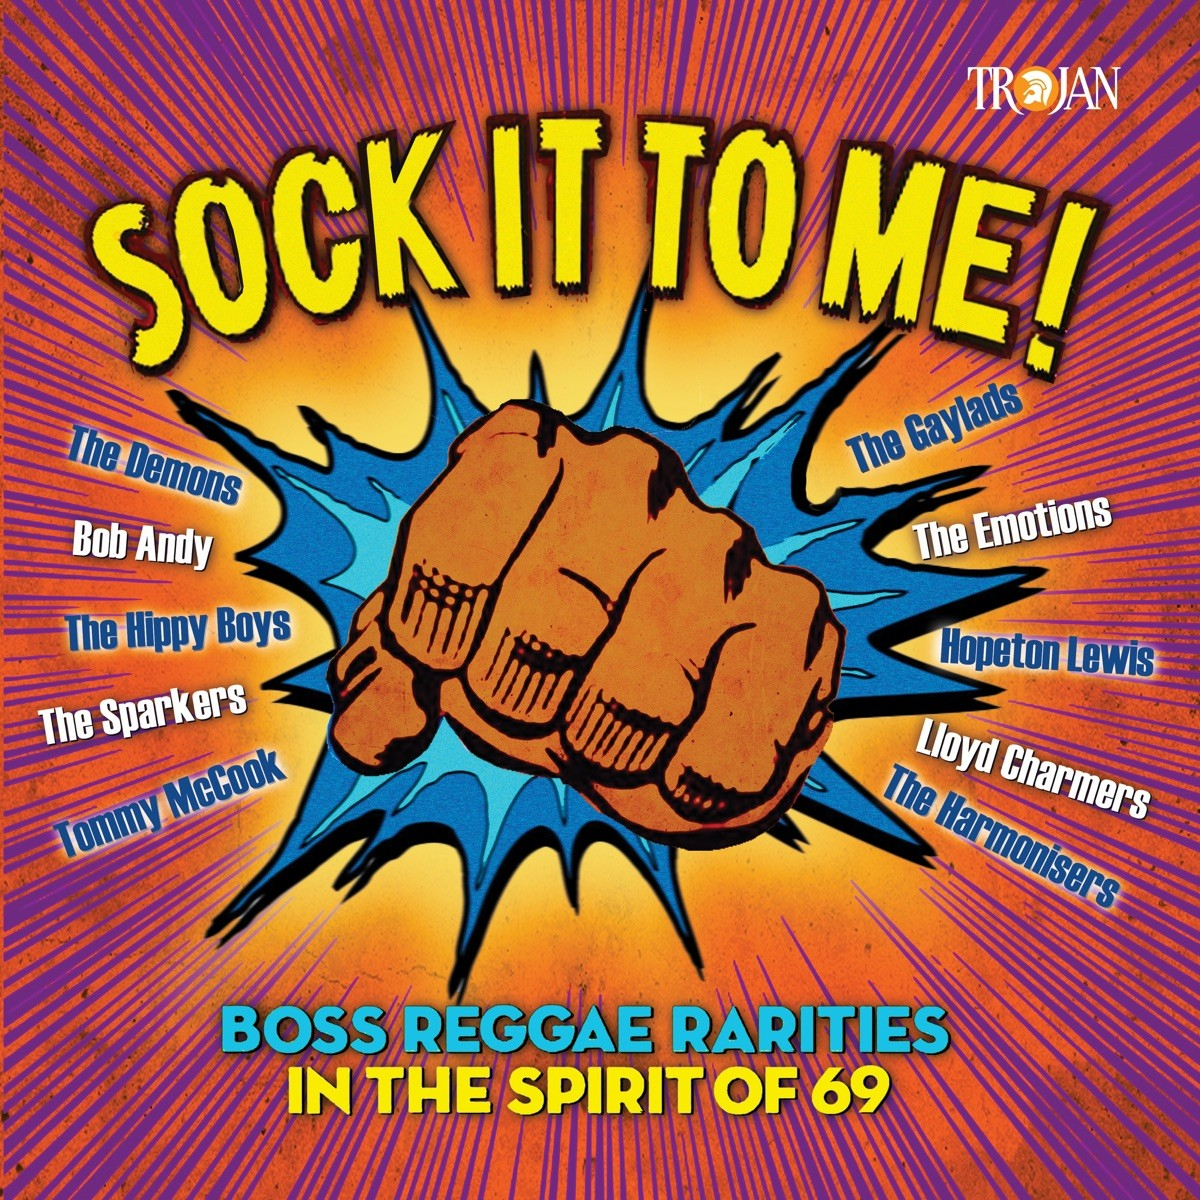 Sock It to Me: Boss Reggae Rarities in the Spirit Of '69 VINYL - 5053849008